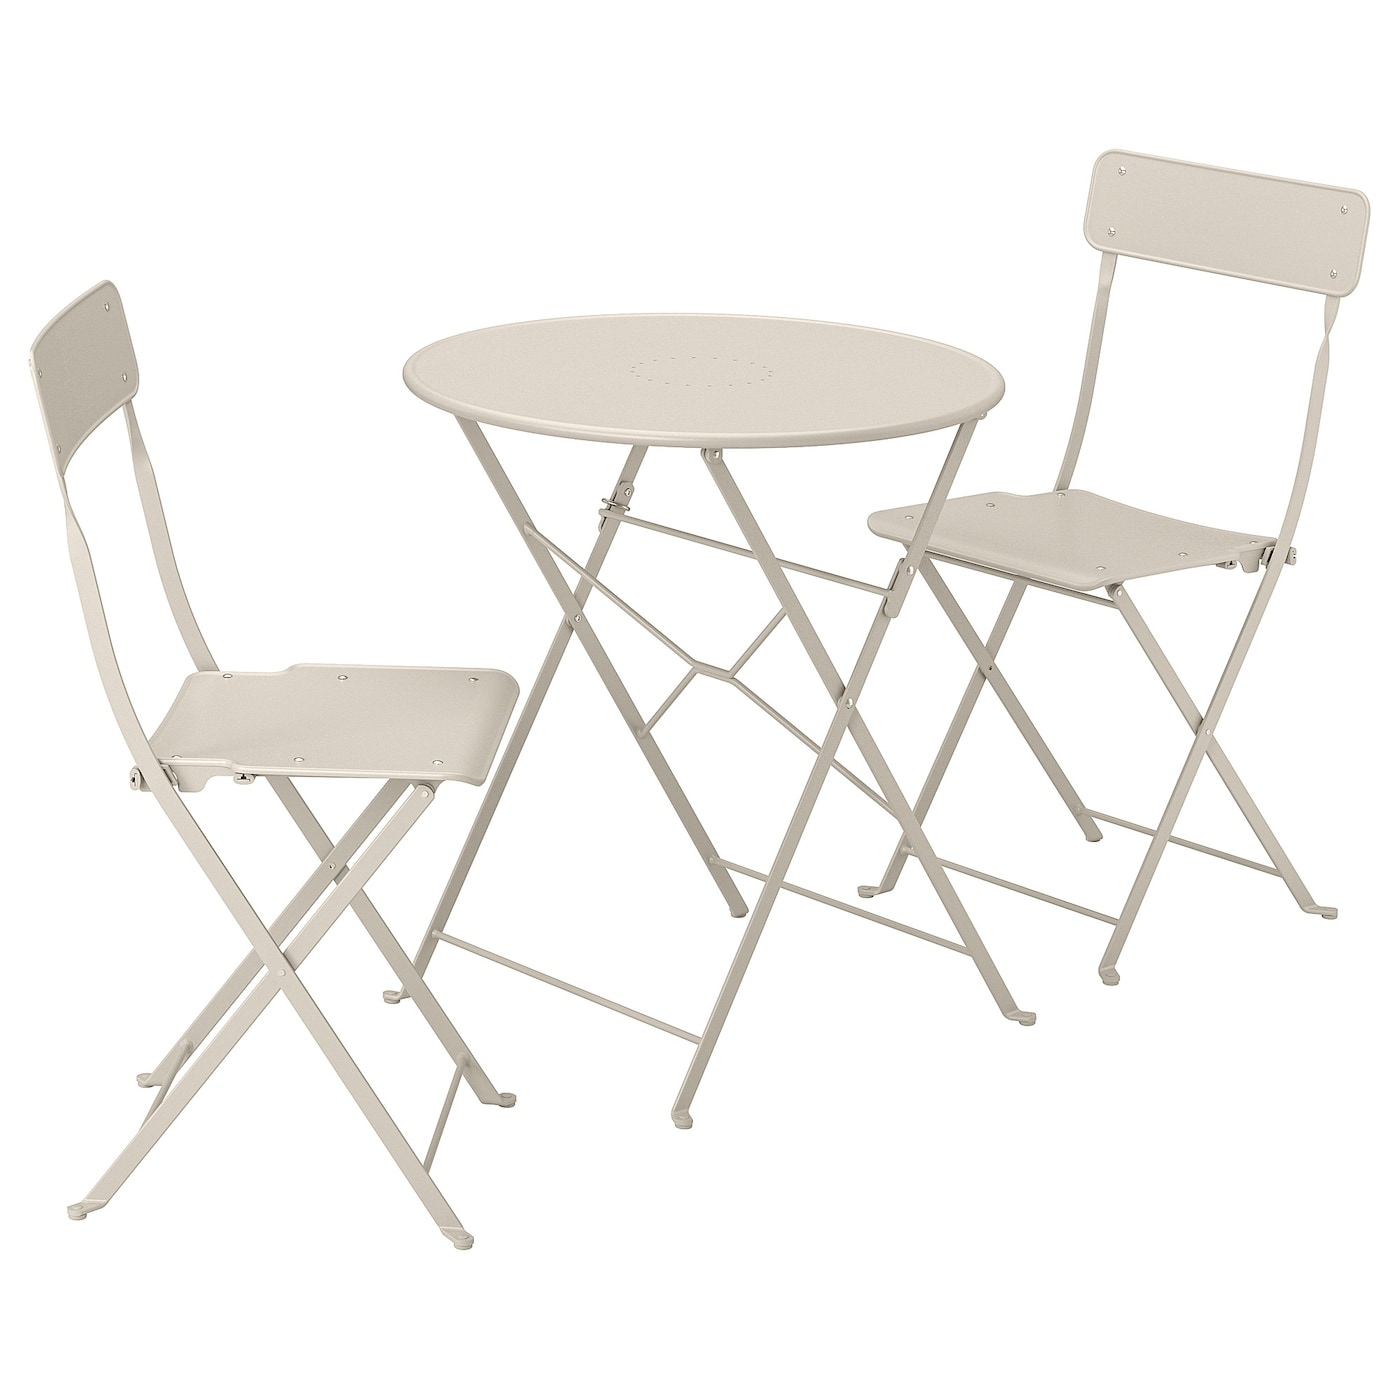 Saltholmen Table And 2 Folding Chairs Outdoor Beige Buy Online Or In Store Ikea